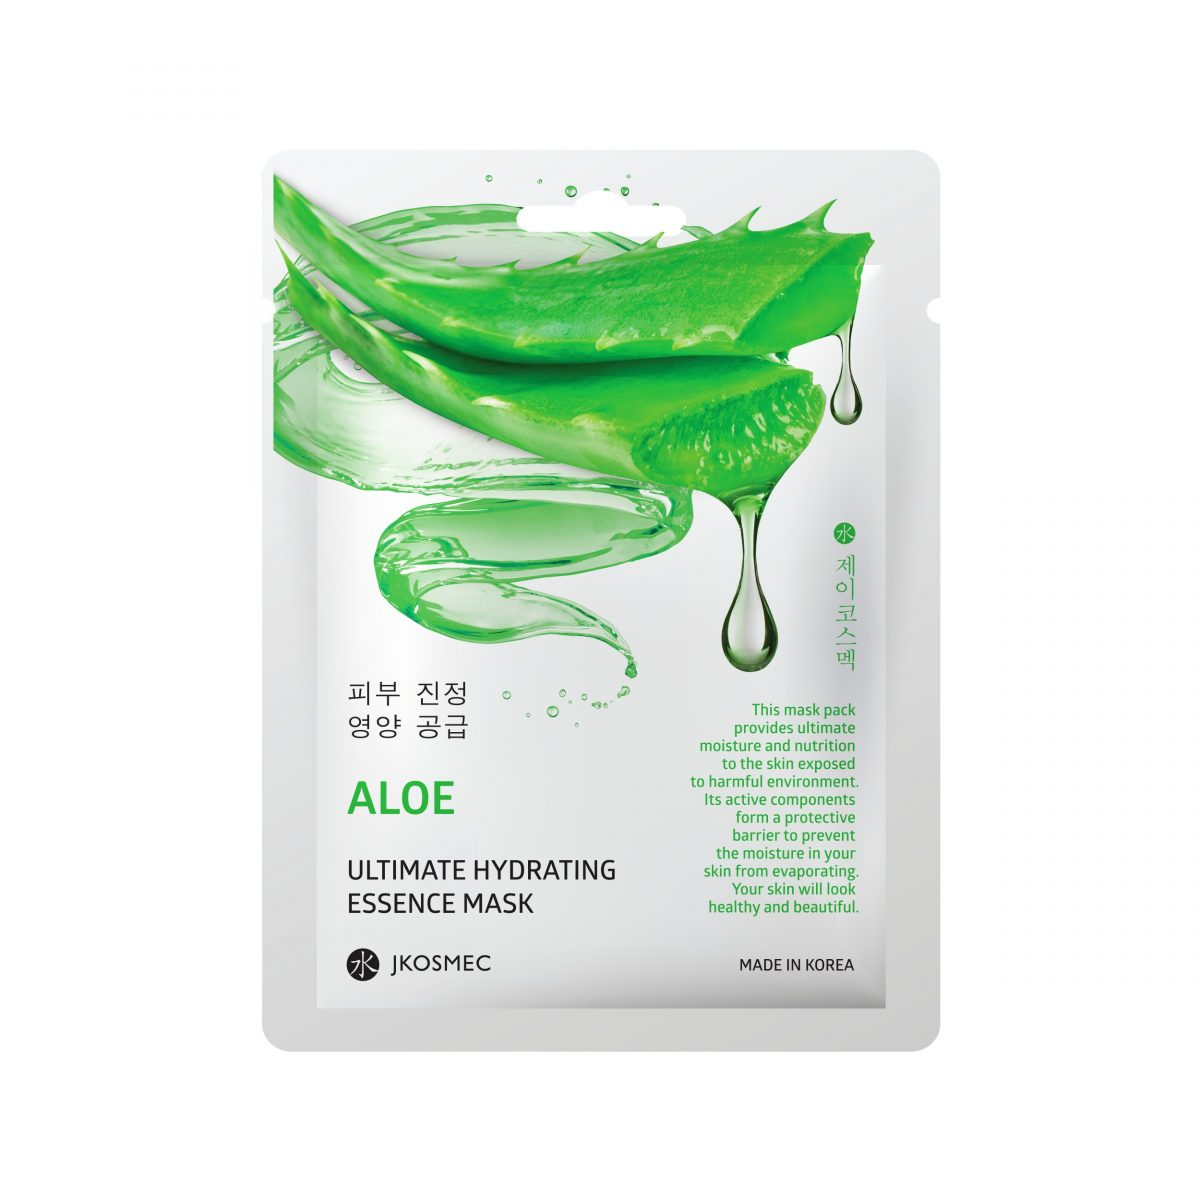 JKOSMEC ALOE ULTIMATE HYDRATING ESSENCE MASK